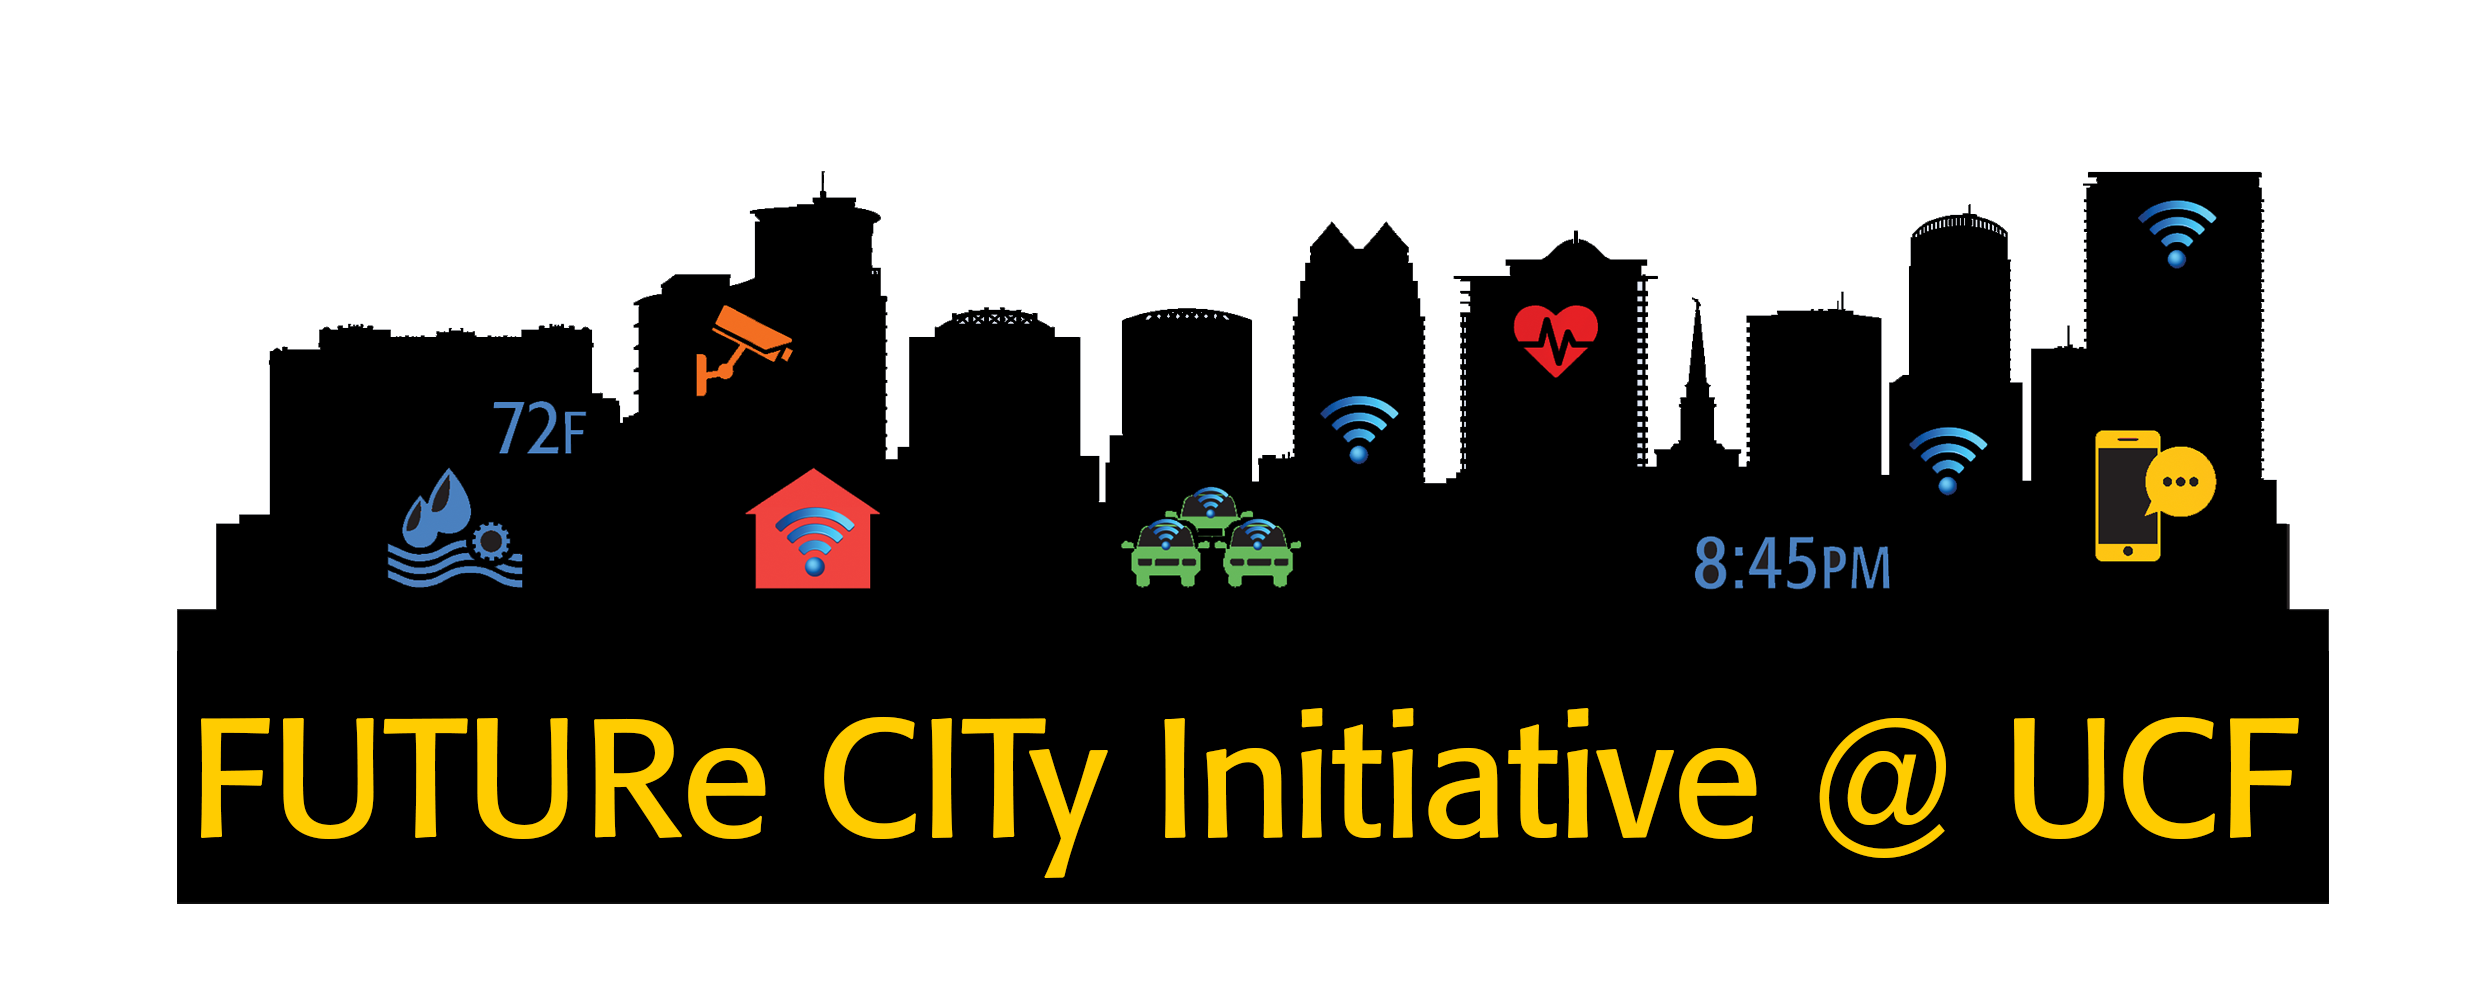 Skyline clipart smart city. Assistant professor infrastructure department